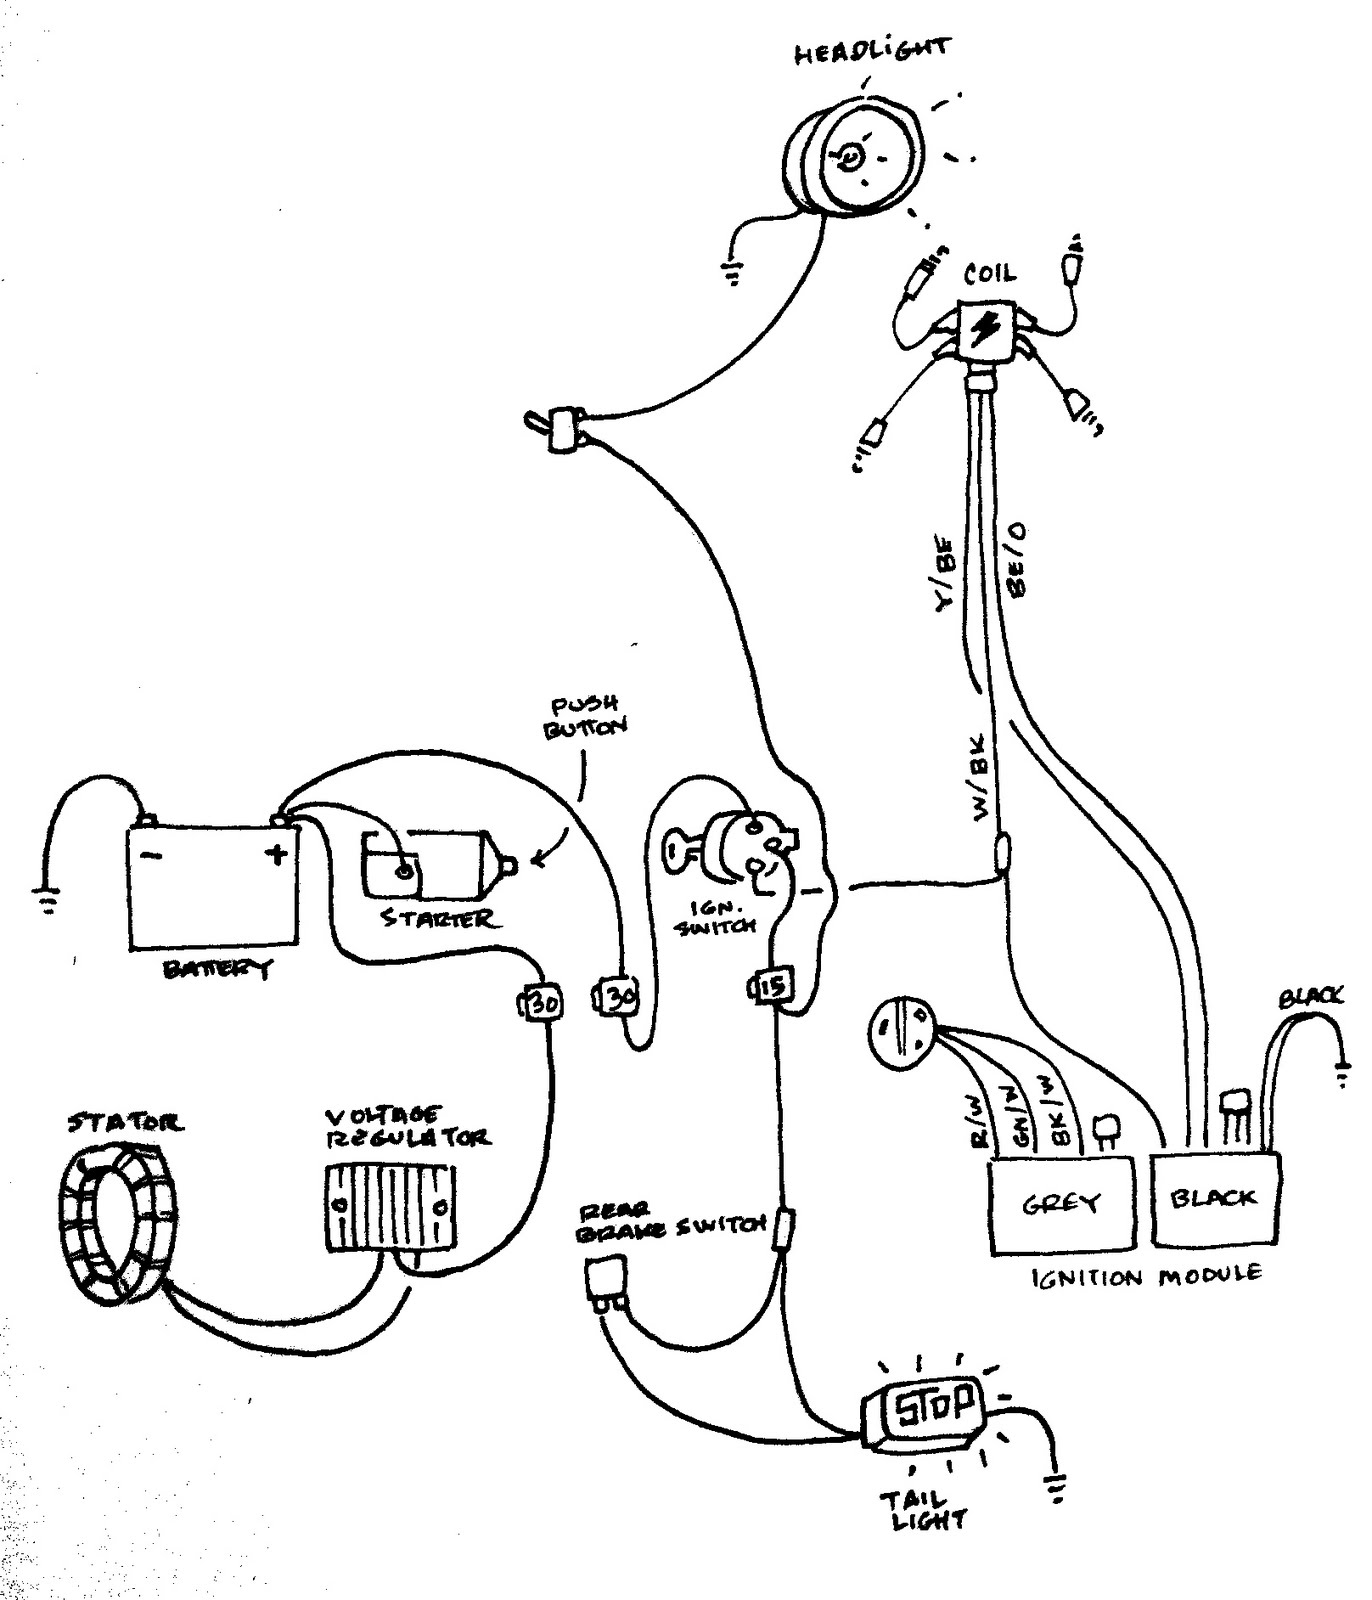 new biltwell blog  sporty wiring how